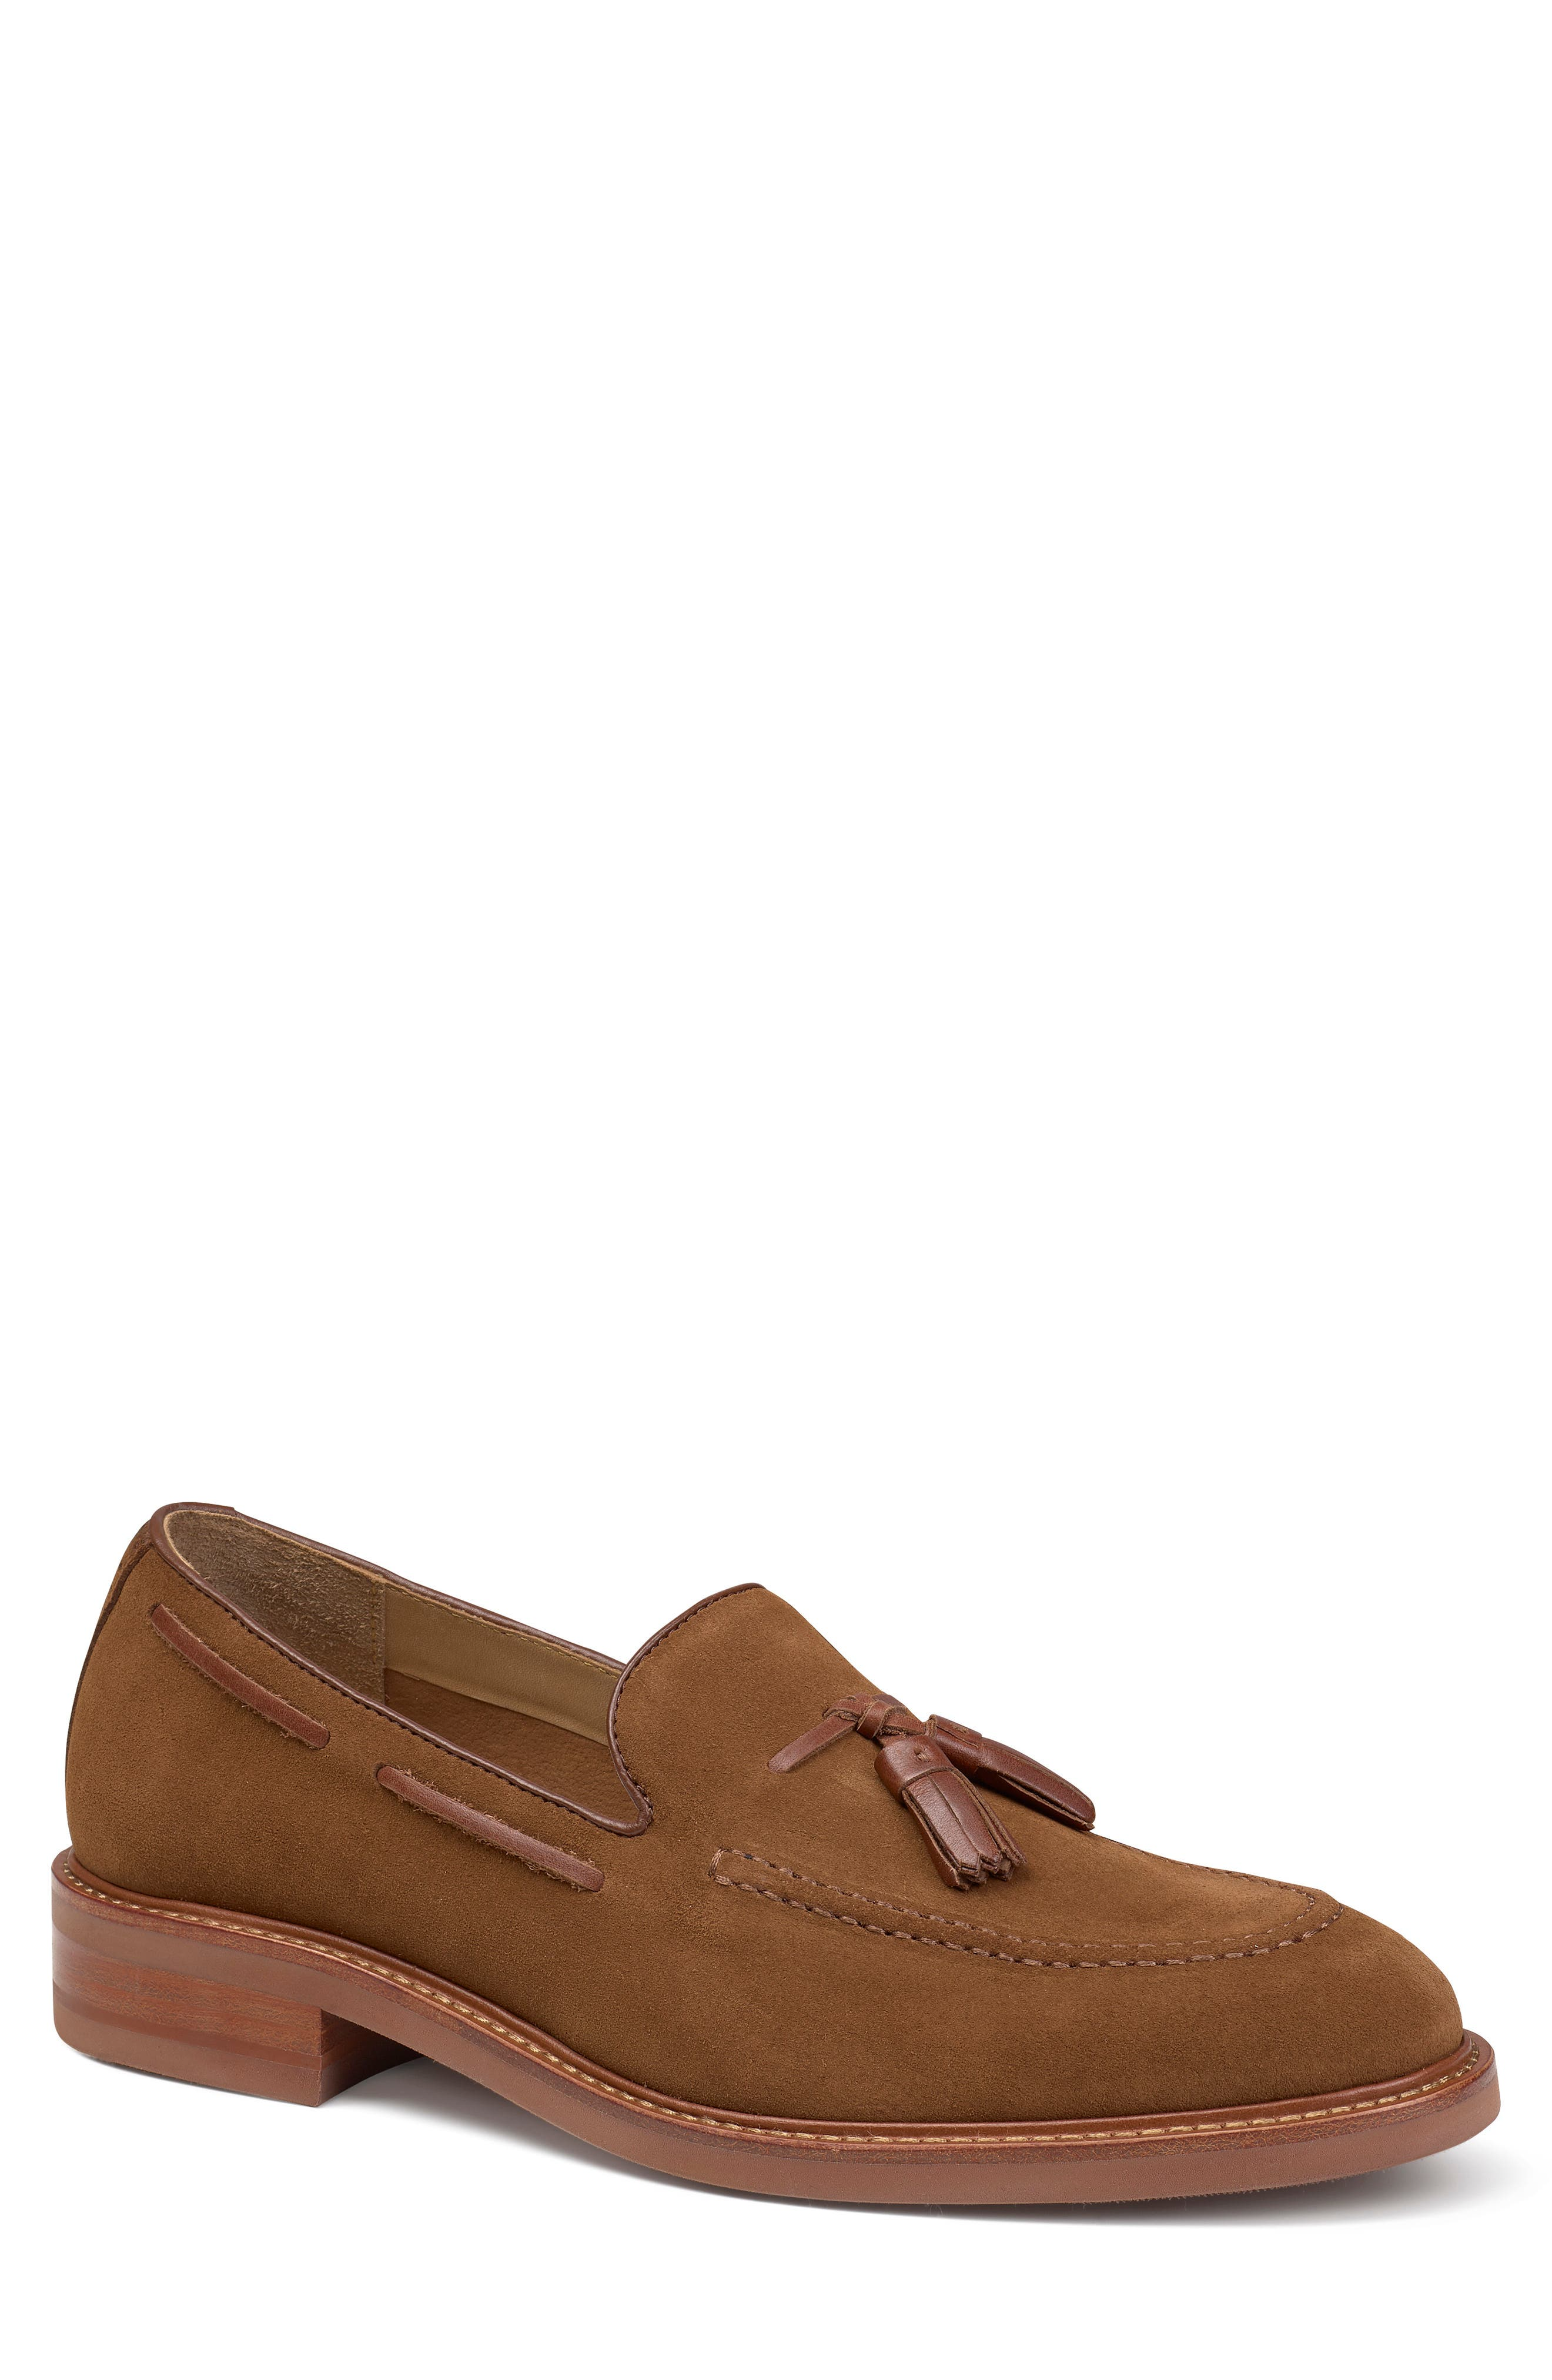 An XL Extralight sole grounds a smart, water-resistant loafer finished with a cushioned footbed and sleek Vachetta leather tassels and trim. Style Name: Trask Lofland Tassel Loafer (Men). Style Number: 6037523 1. Available in stores.